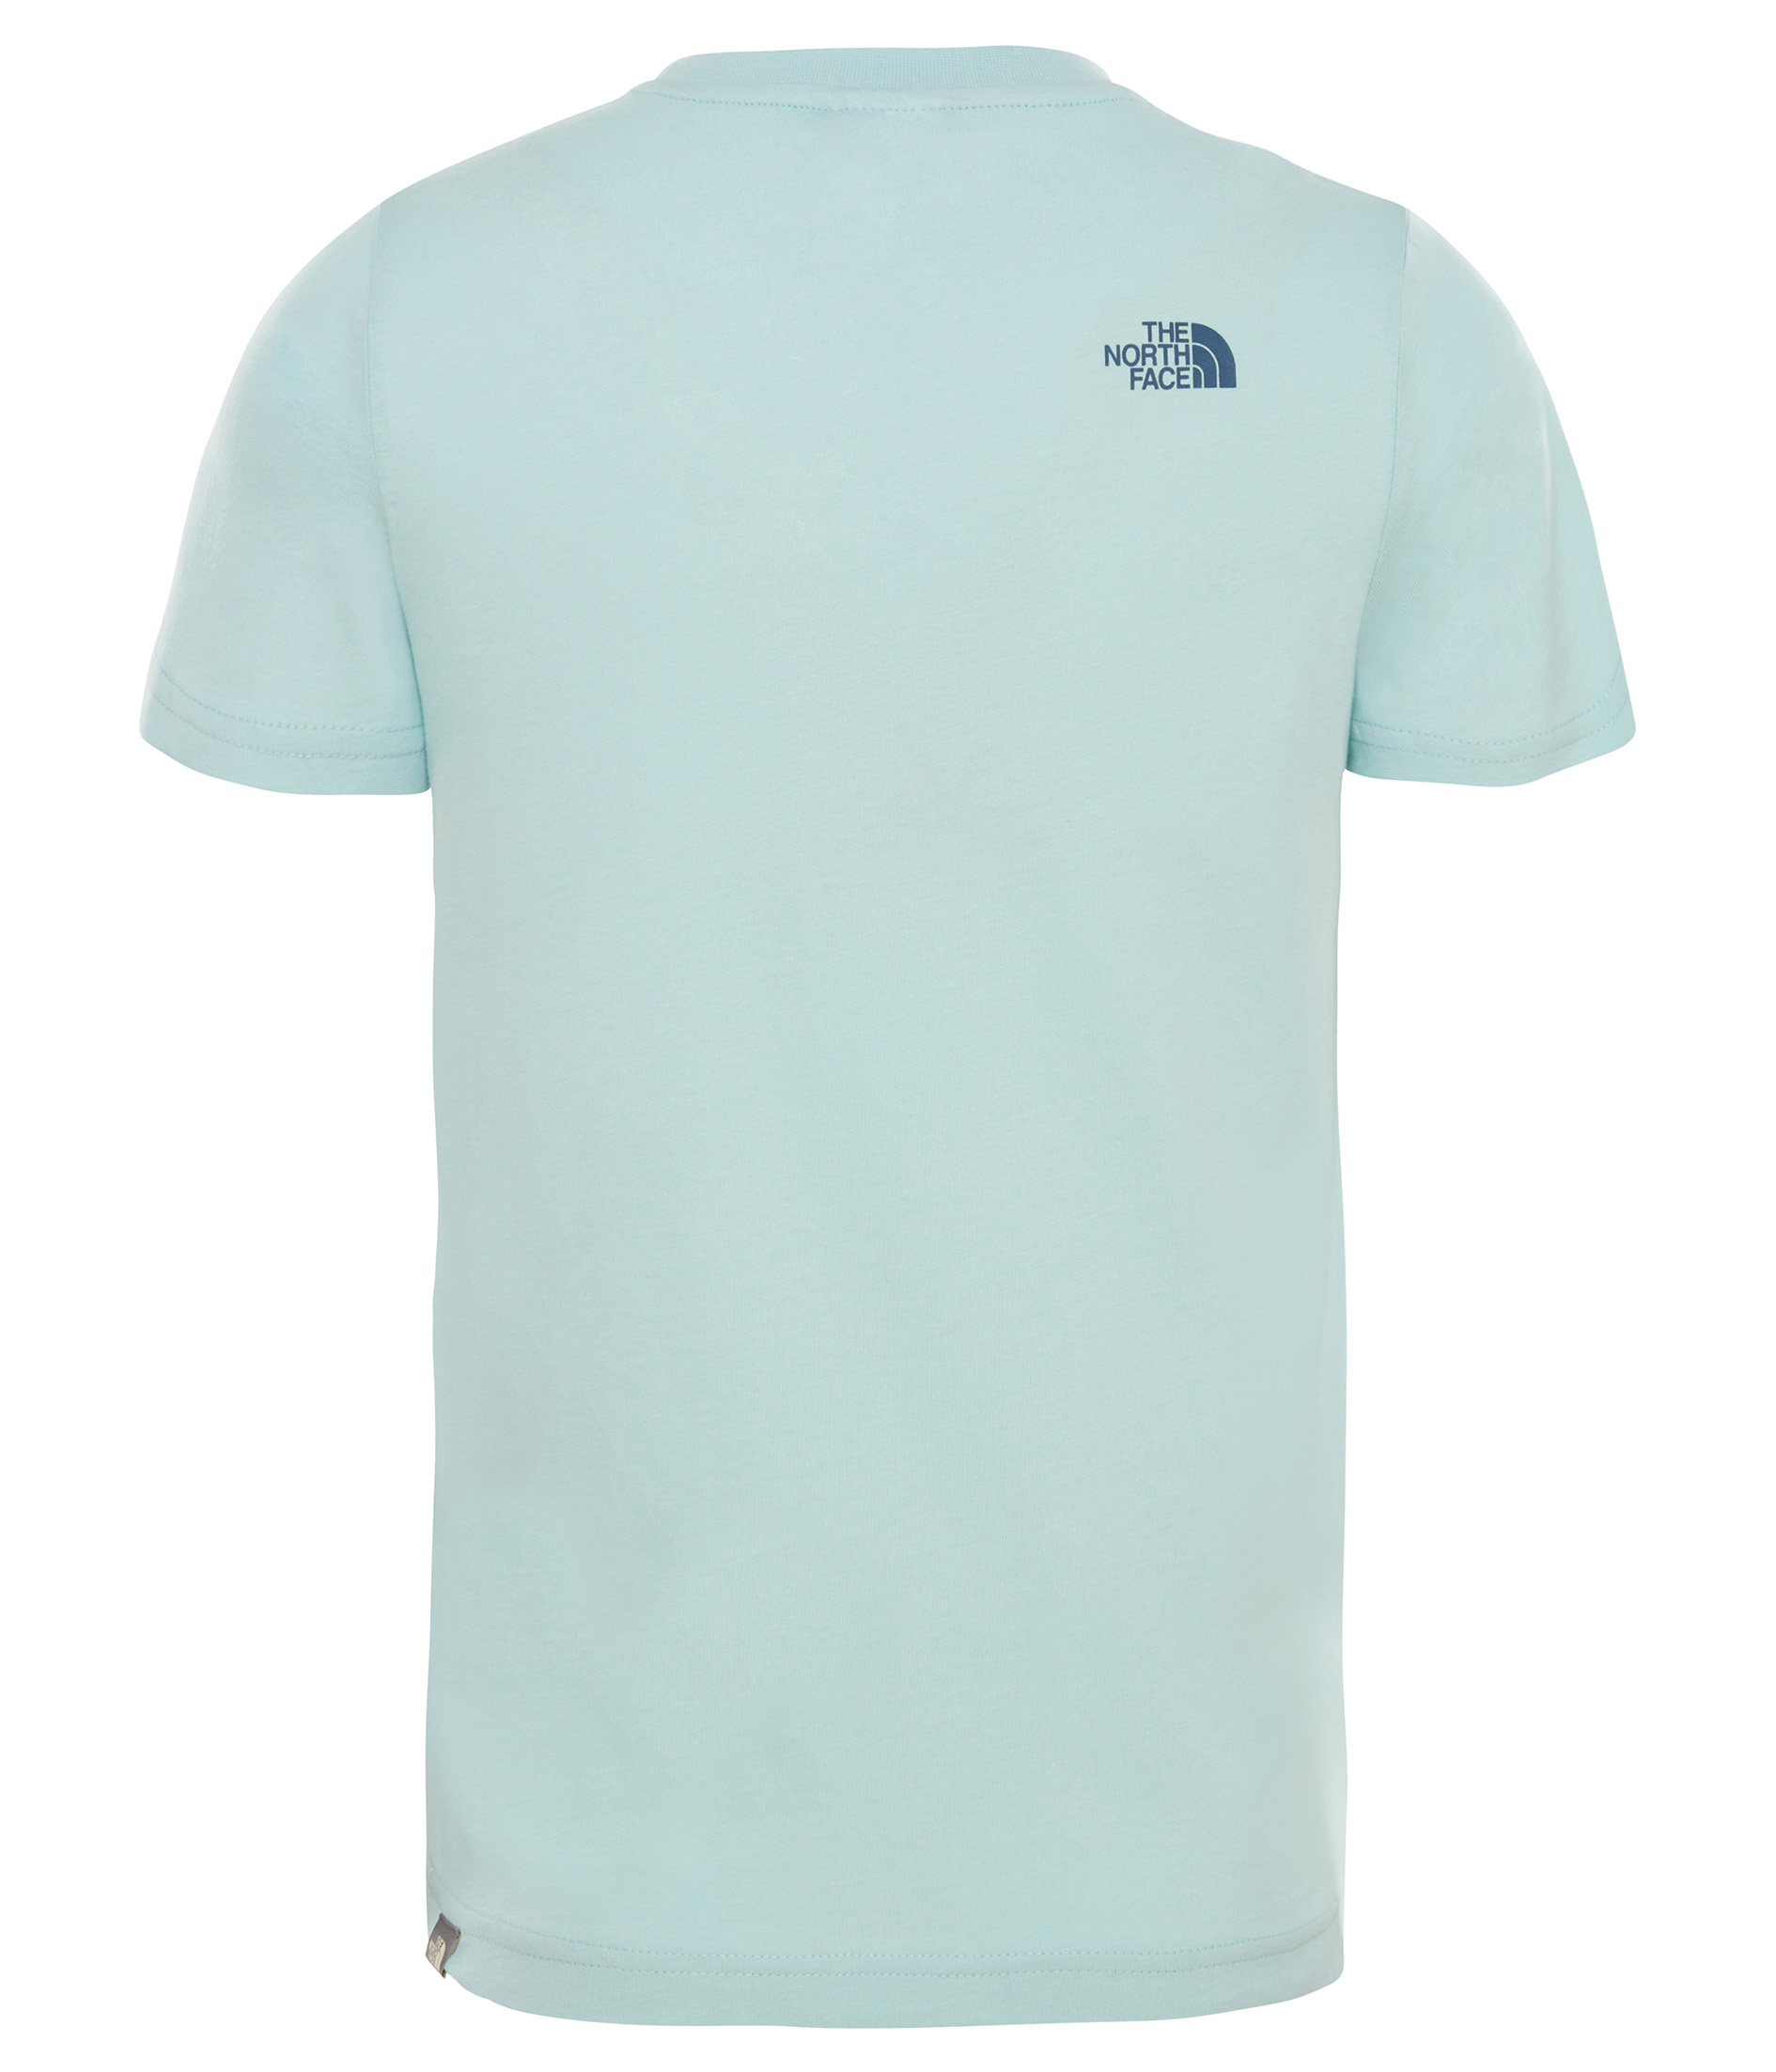 Футболка детская The North Face Ss Simple Dome Canal Blue - Фото 2 большая